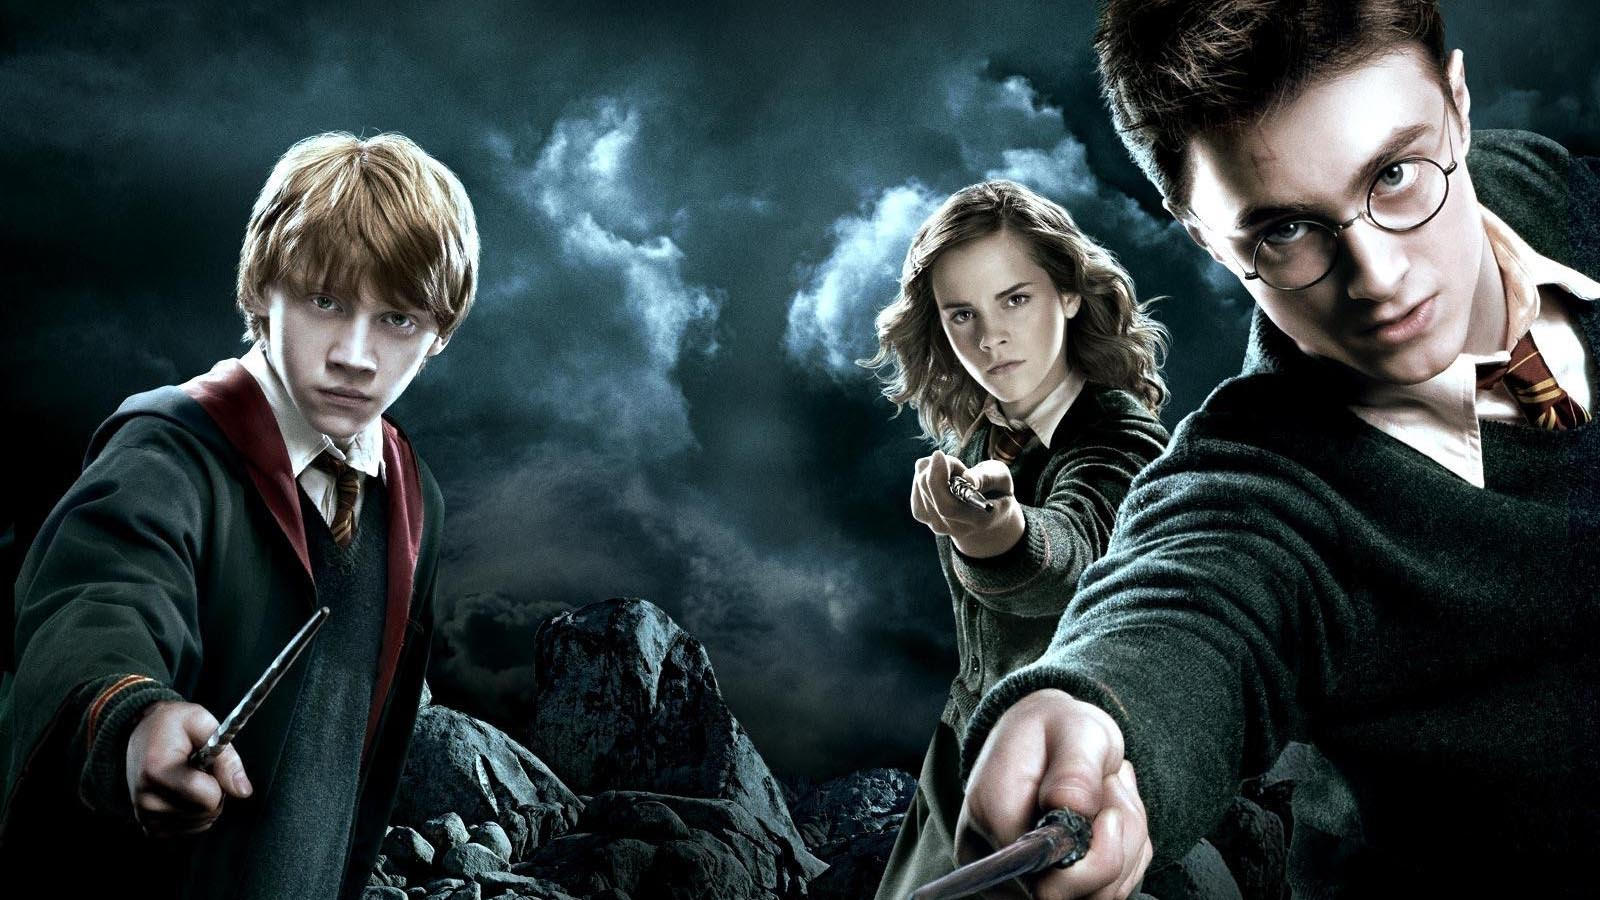 Harry potter - How Well Do You Know Harry Potter